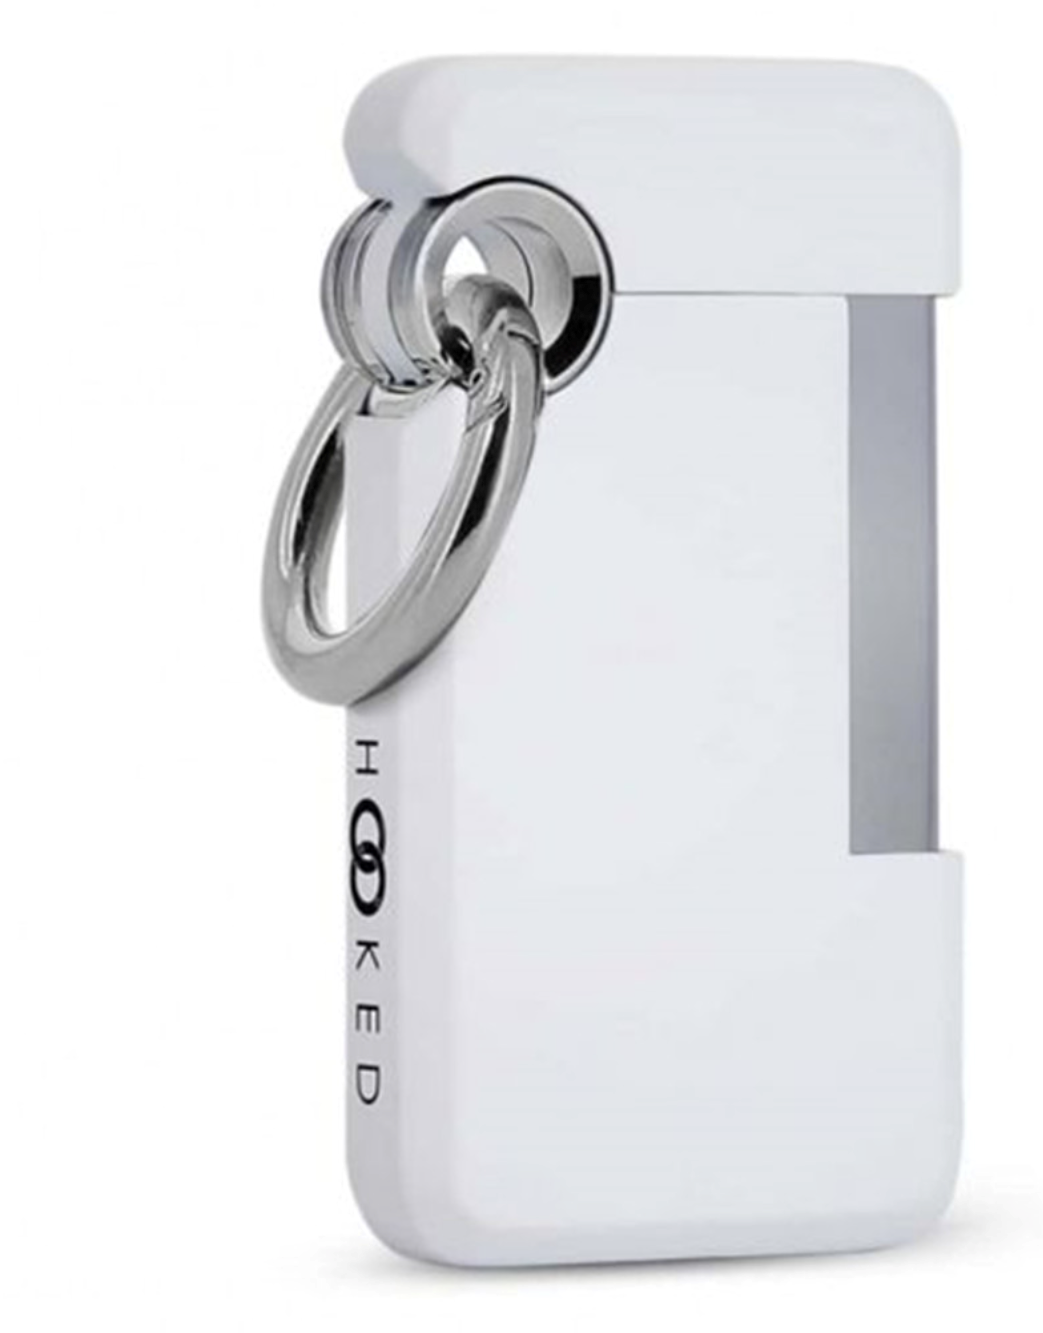 S.T. Dupont Hooked Coco Lighter (White)